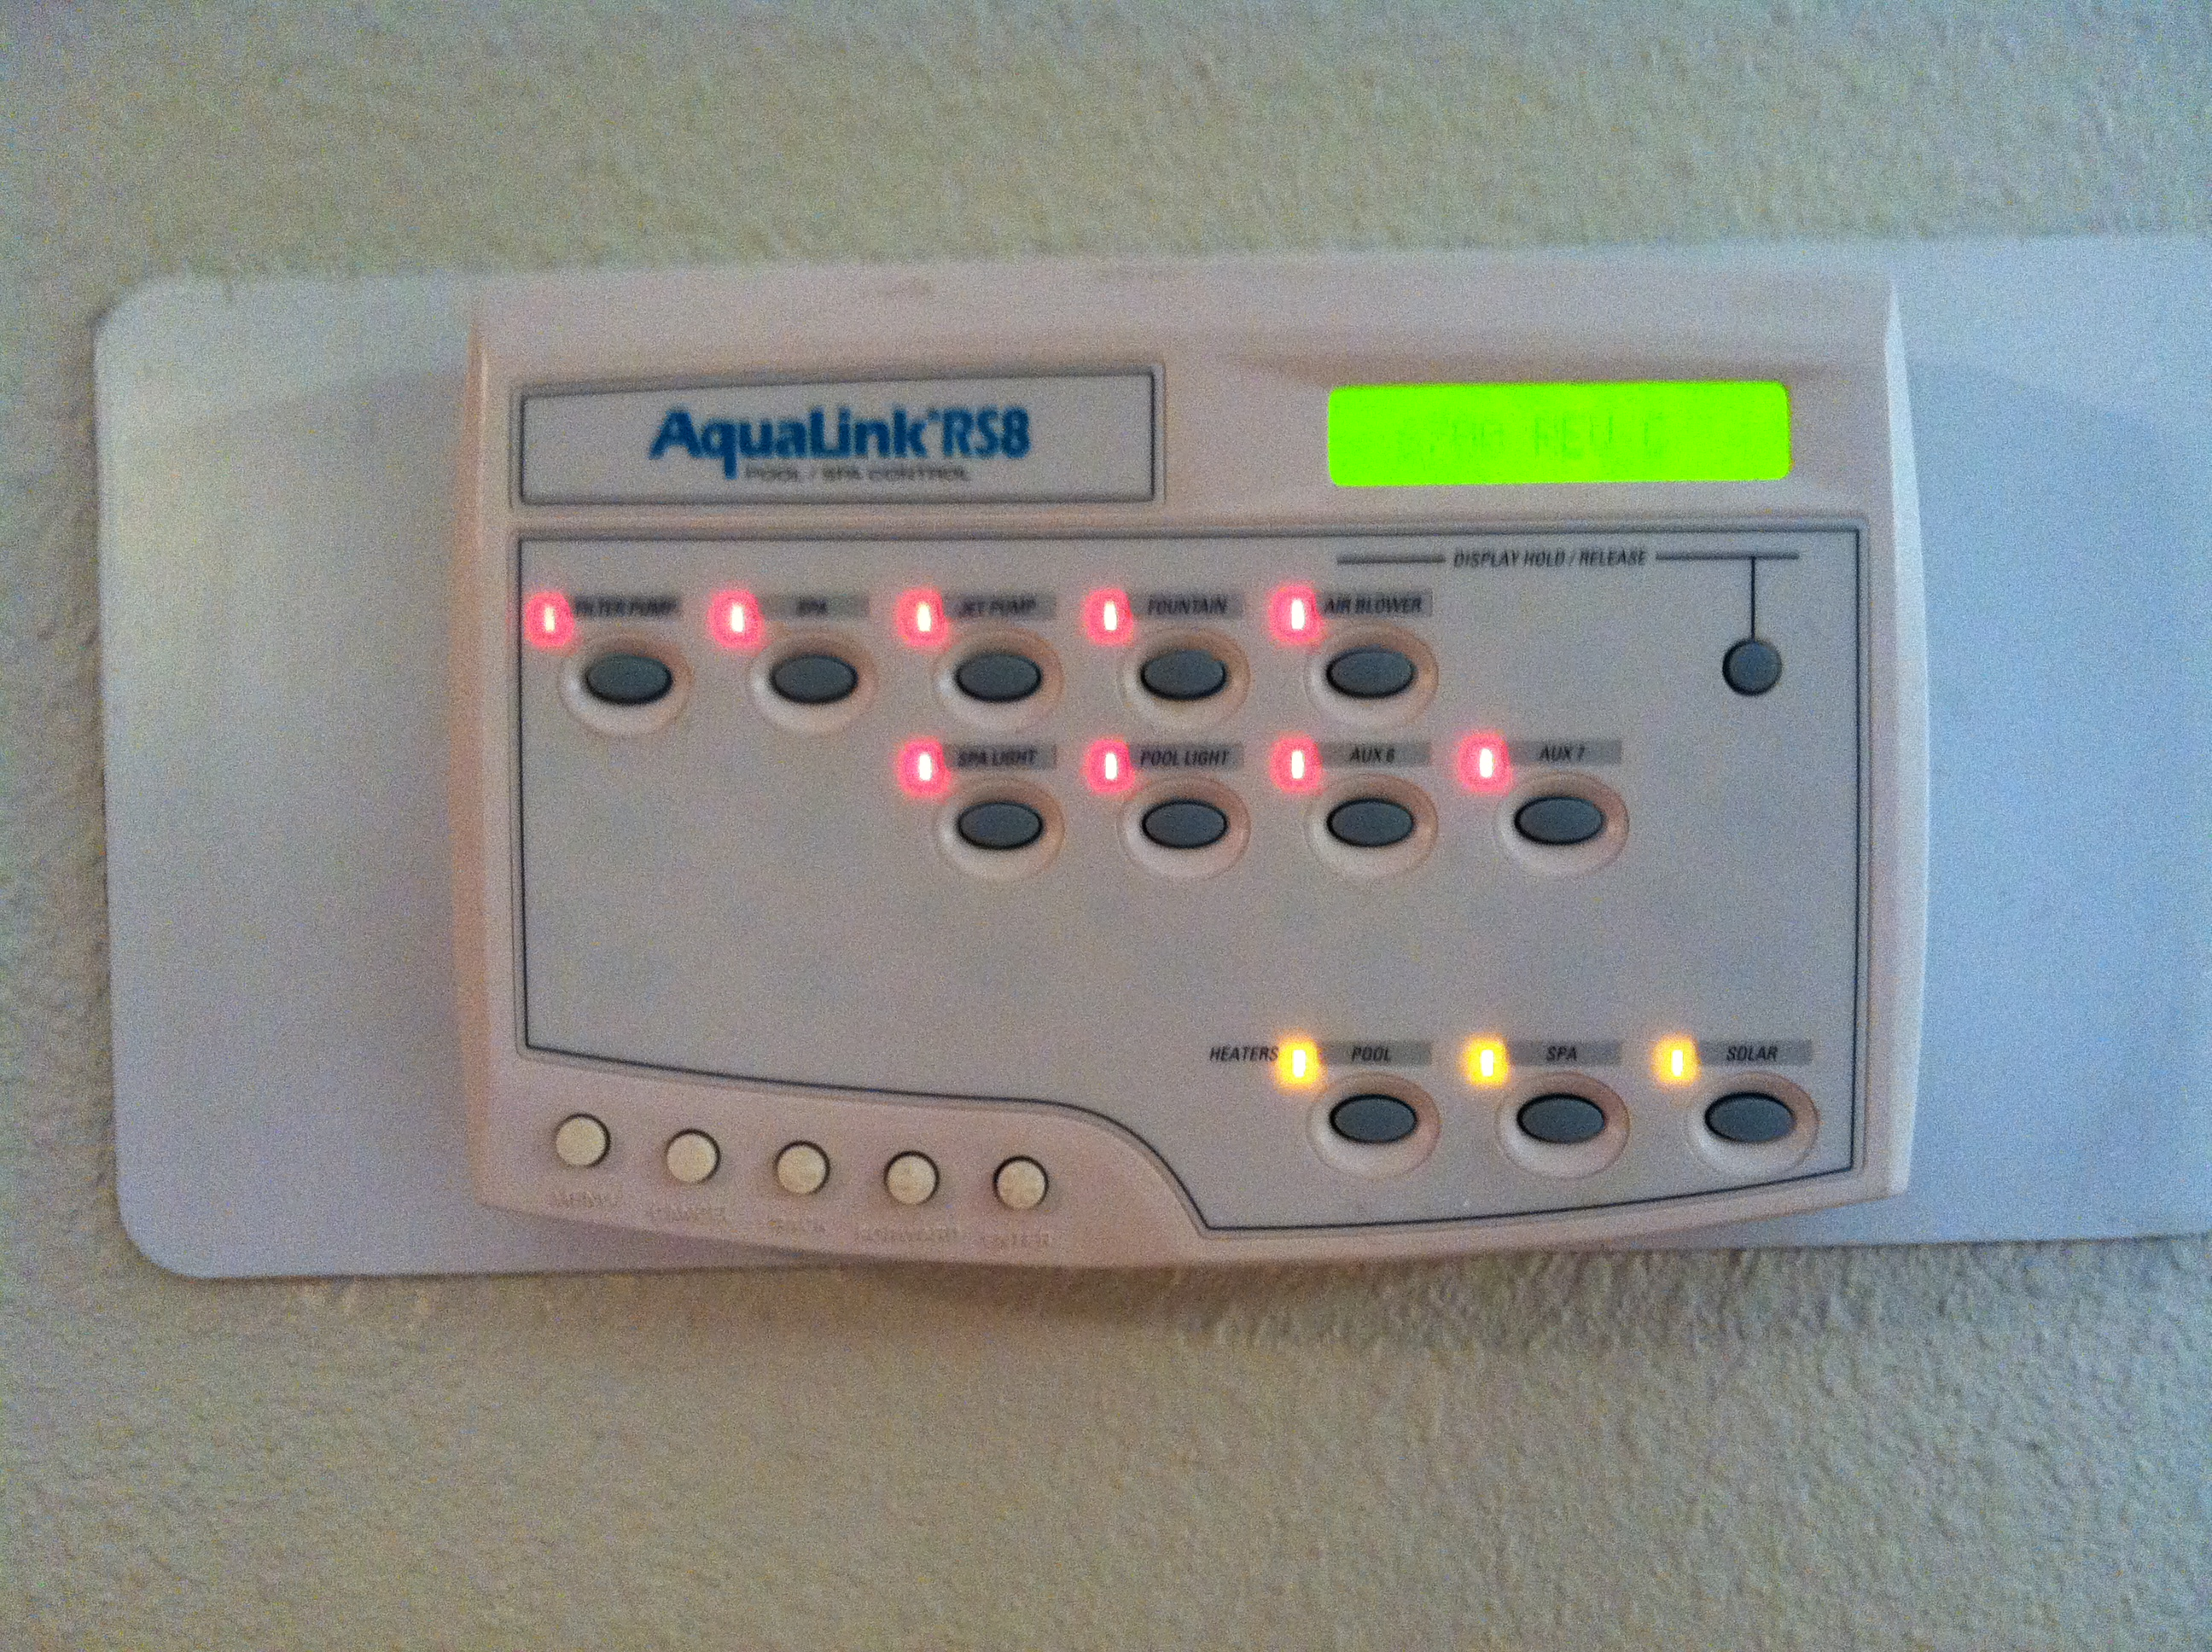 Aqualink Rs Pool Control Center Not Communicating With Main Box 6613 Jandy Actuator Wiring Diagram Full Size Image